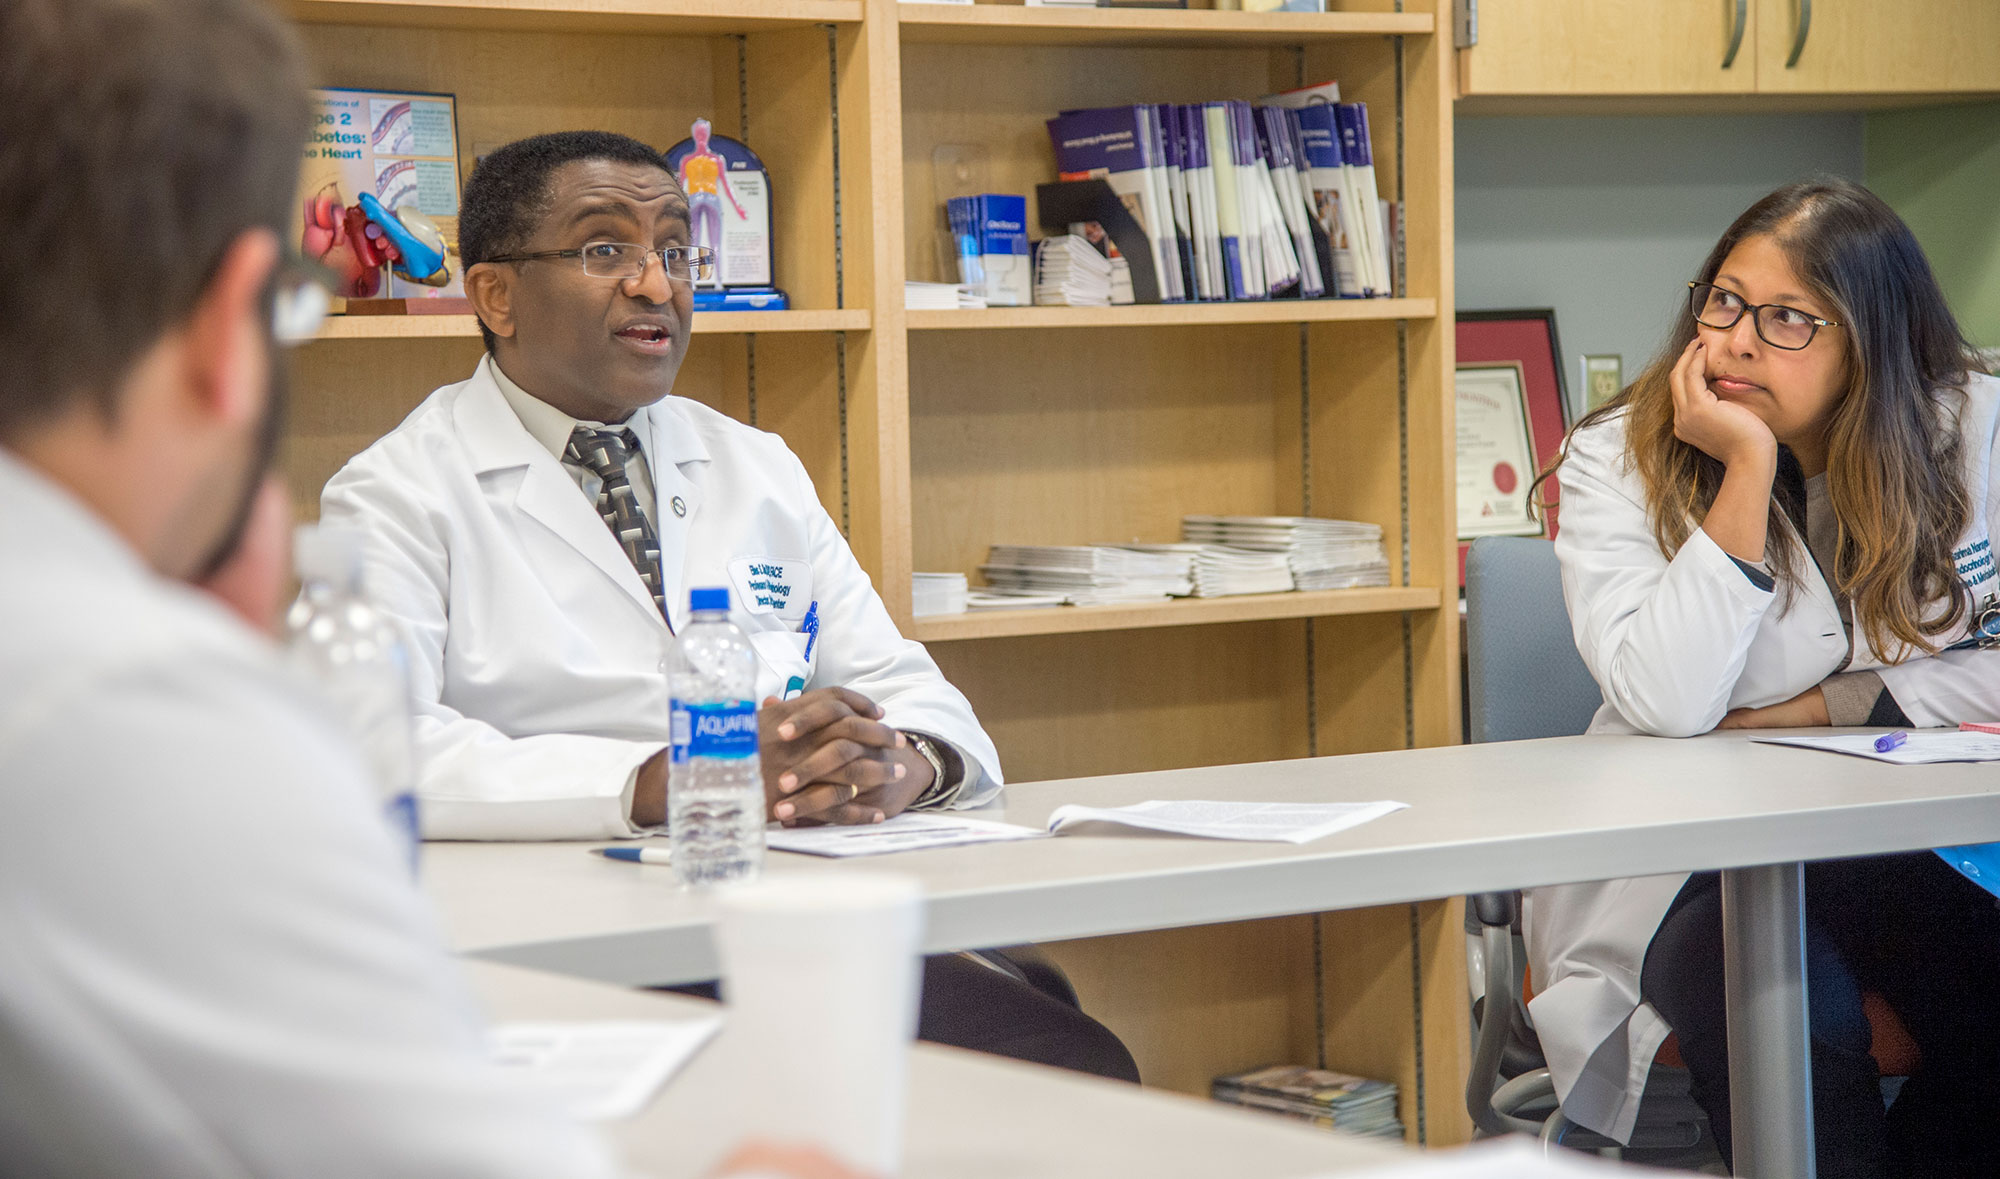 Fellows talk with Dr. Elias Siraj, Chief of EVMS Endocrine & Metabolic Disorders